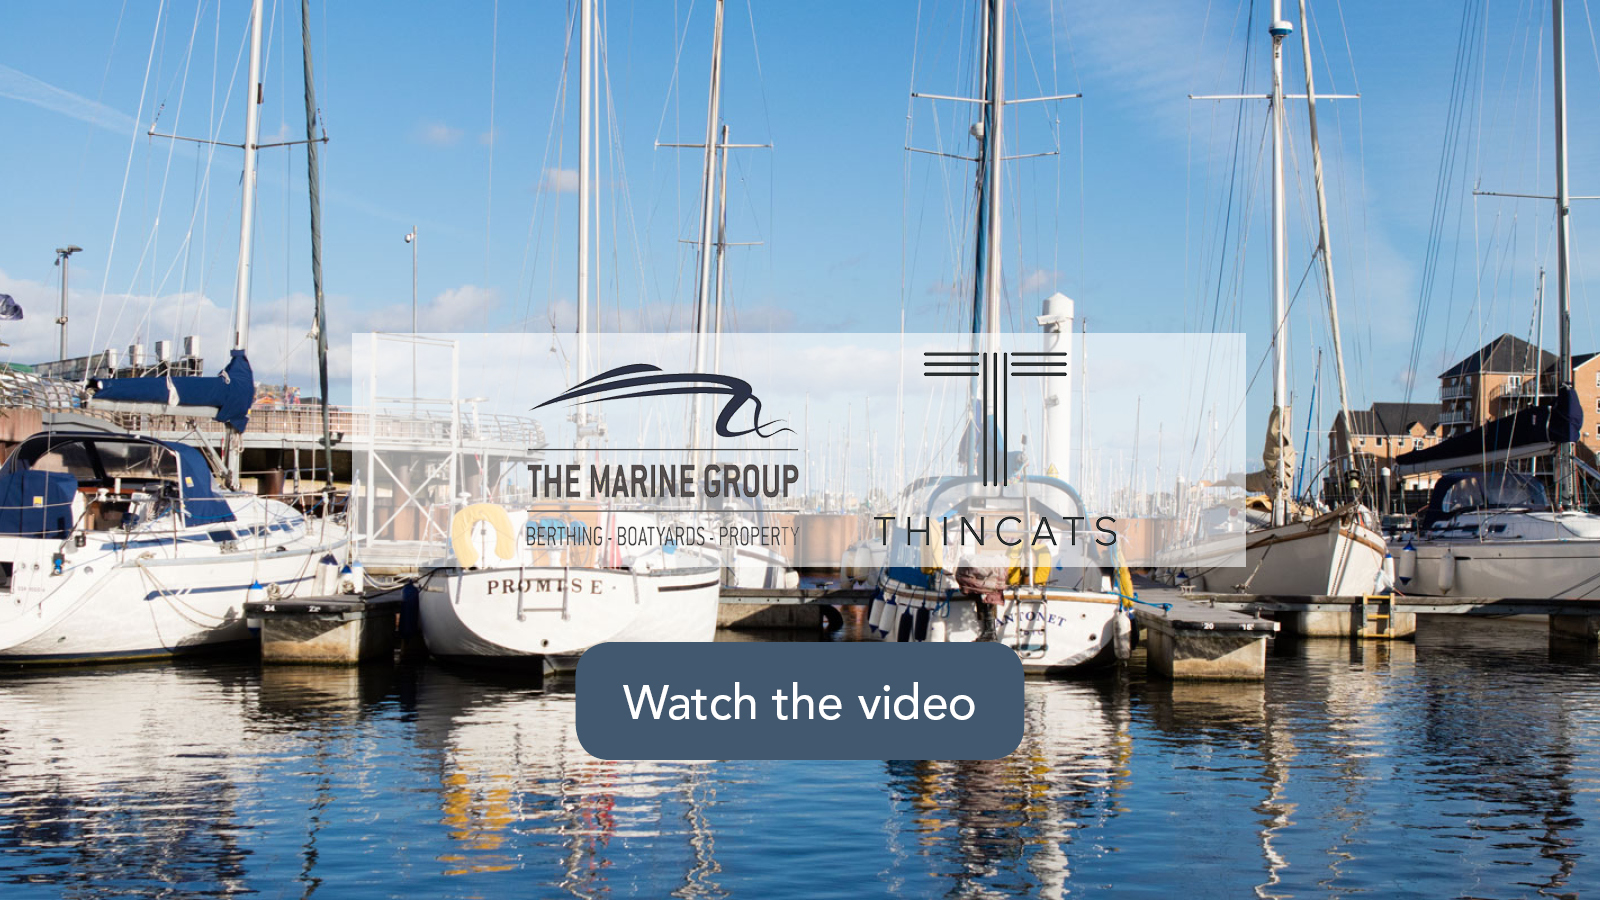 marine-group-video-thumbnail.b.jpg